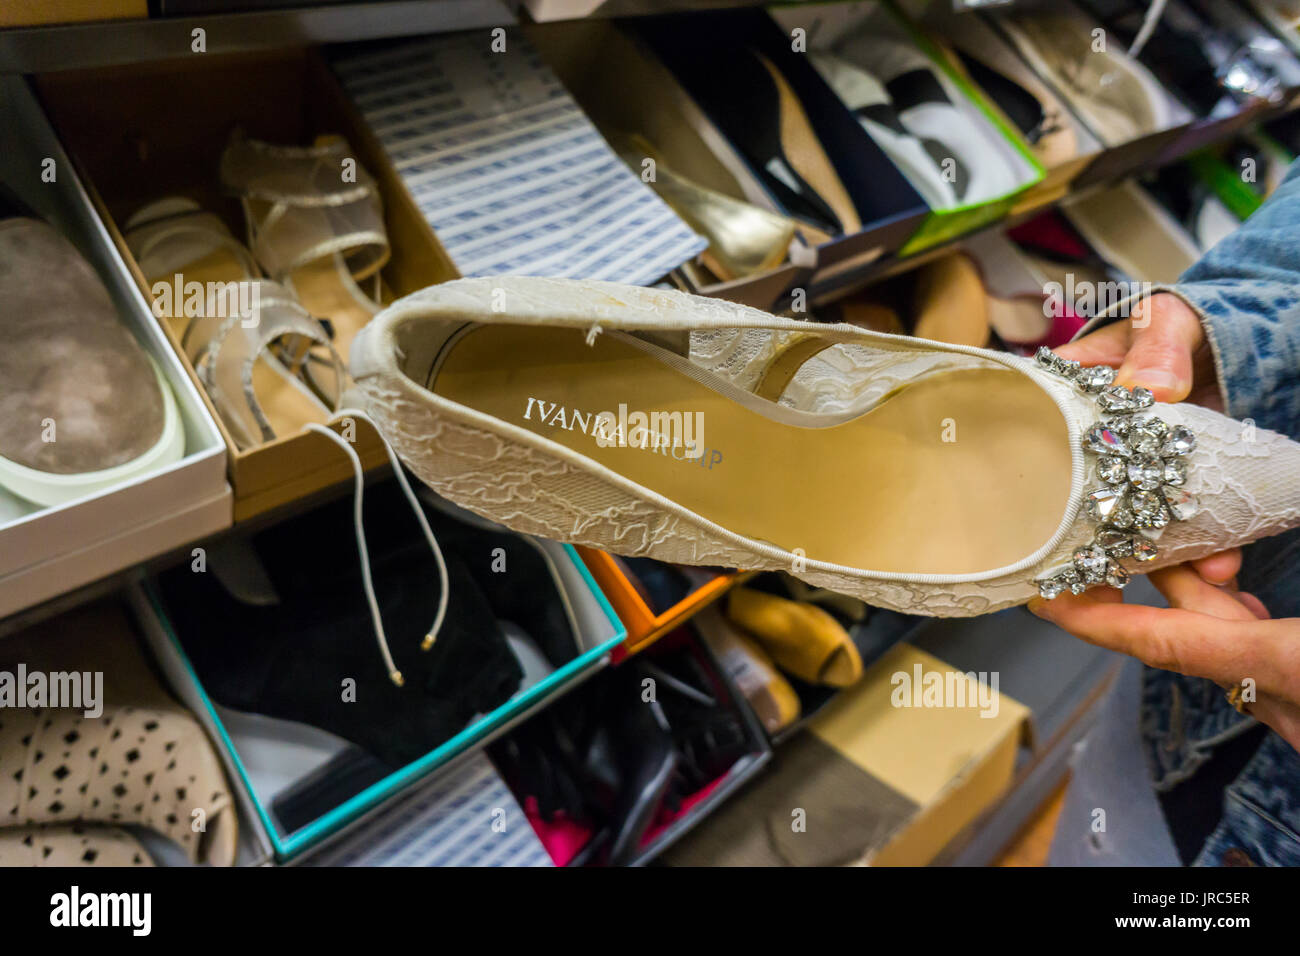 A shopper admires Ivanka Trump designer shoes being sold in an off-price retailer's clearance department in New York on Tuesday, July 25, 2017.  (© Richard B. Levine) - Stock Image